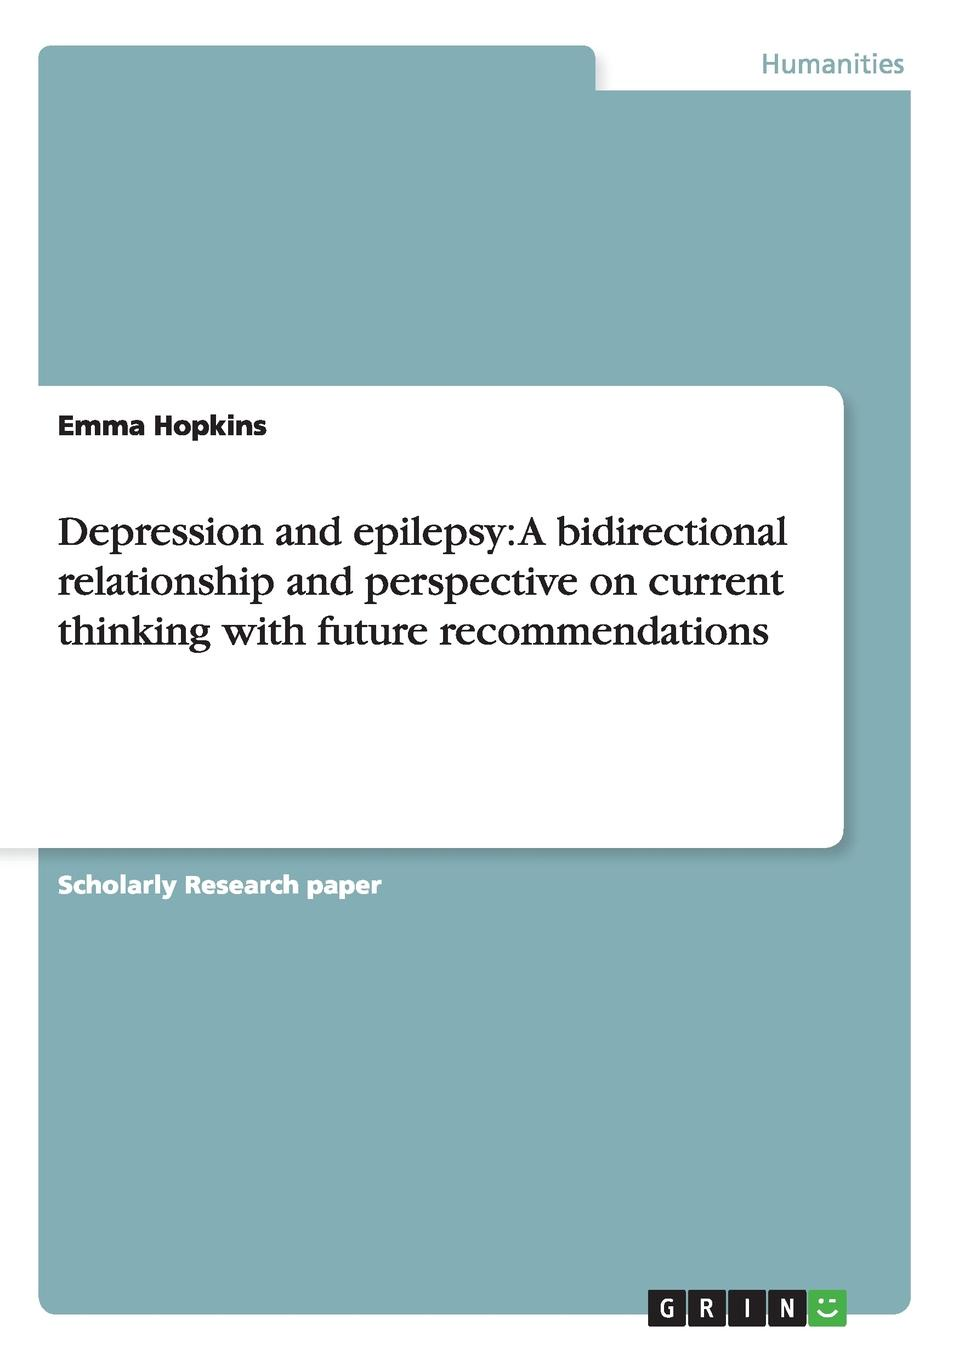 Emma Hopkins Depression and epilepsy. A bidirectional relationship and perspective on current thinking with future recommendations caren haines rn silently seizing common unrecognized and frequently missed seizures and their potentially damaging impact on individuals with autism spectrum disorders